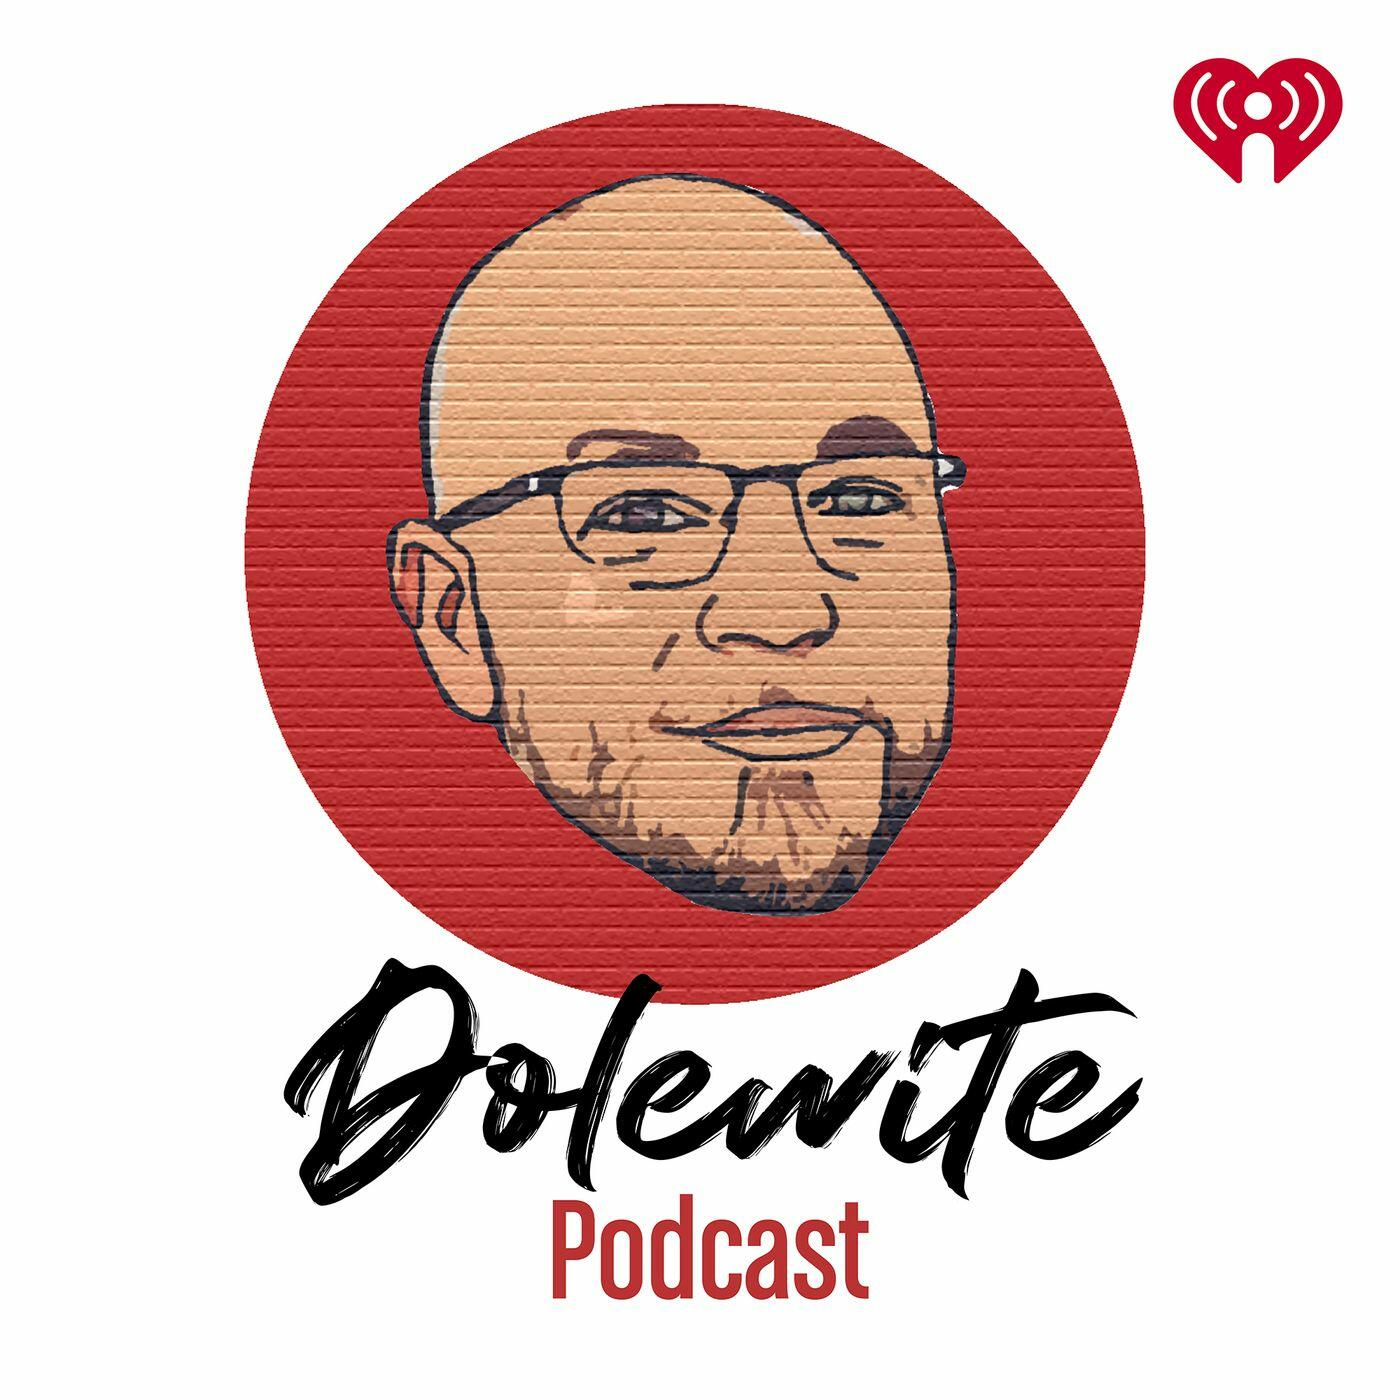 The Dolewite Podcast